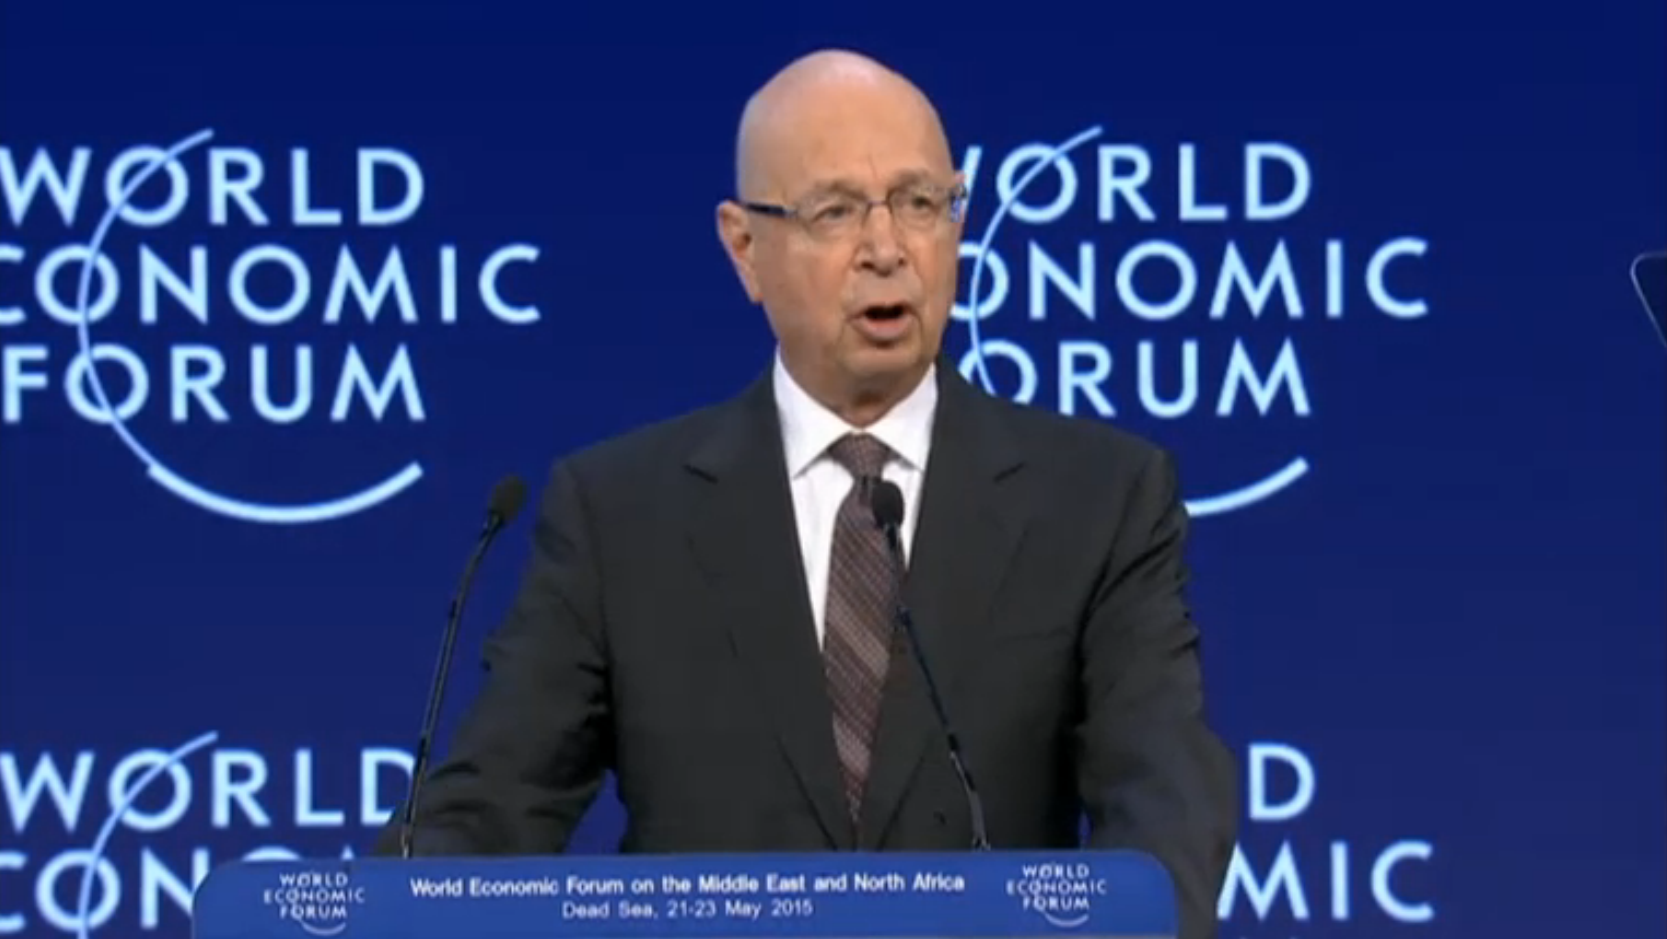 Klaus Schwab, founder and executive chairman of the World Economic Forum